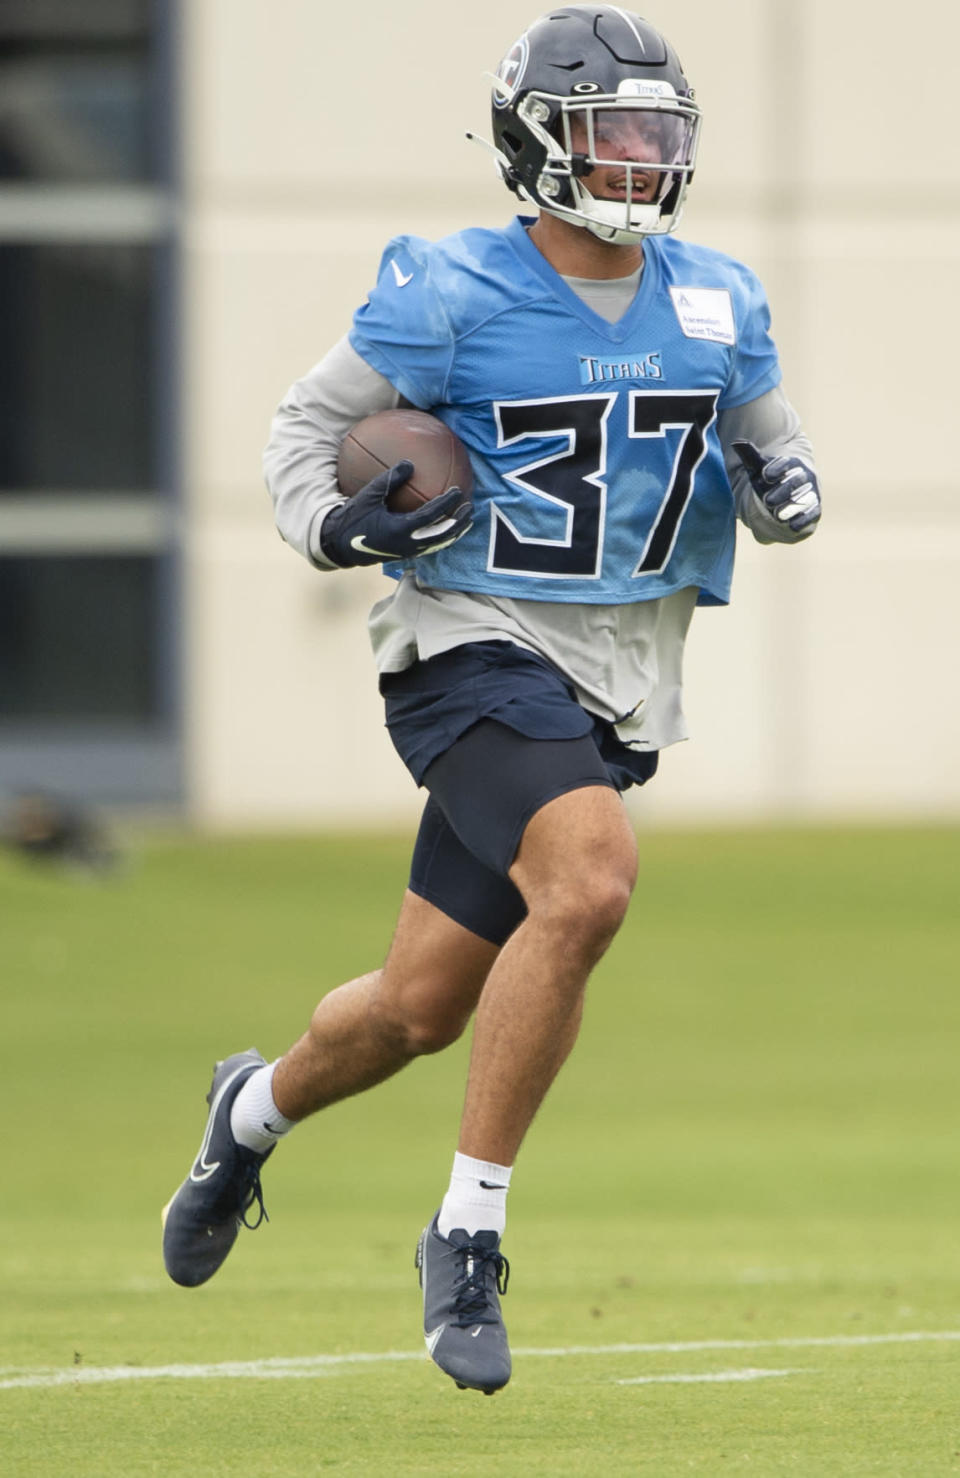 Tennessee Titans safety Amani Hooker runs a drill during an NFL football practice Thursday, June 10, 2021, in Nashville, Tenn. (George Walker IV/Pool Photo via AP)